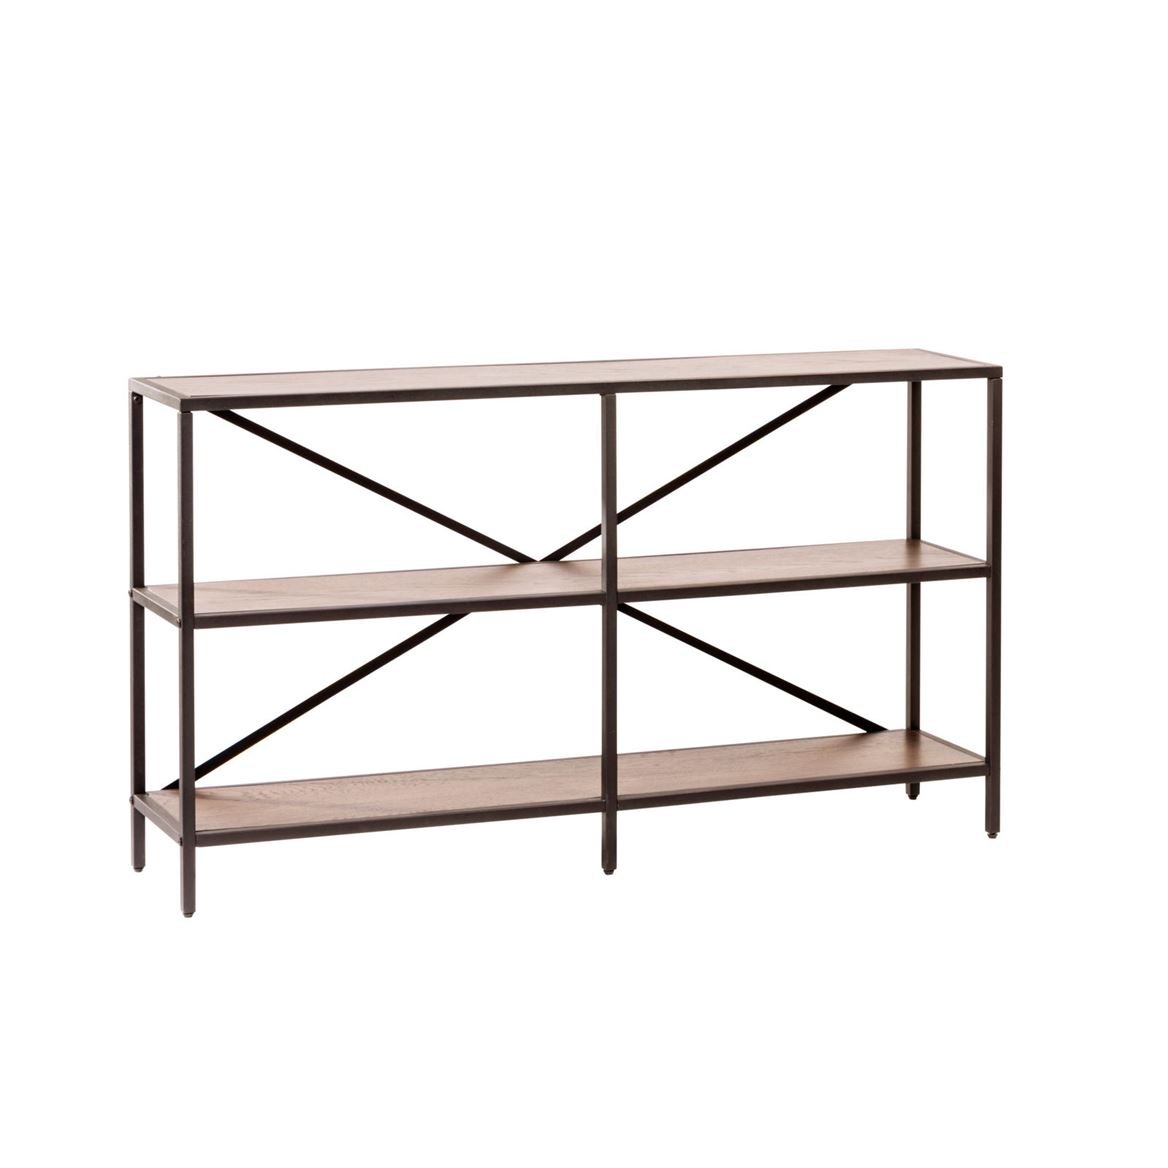 DAYTON XL Estantería de pared natural A 78 x An. 30 x L 140 cm_dayton-xl-estantería-de-pared-natural-a-78-x-an--30-x-l-140-cm